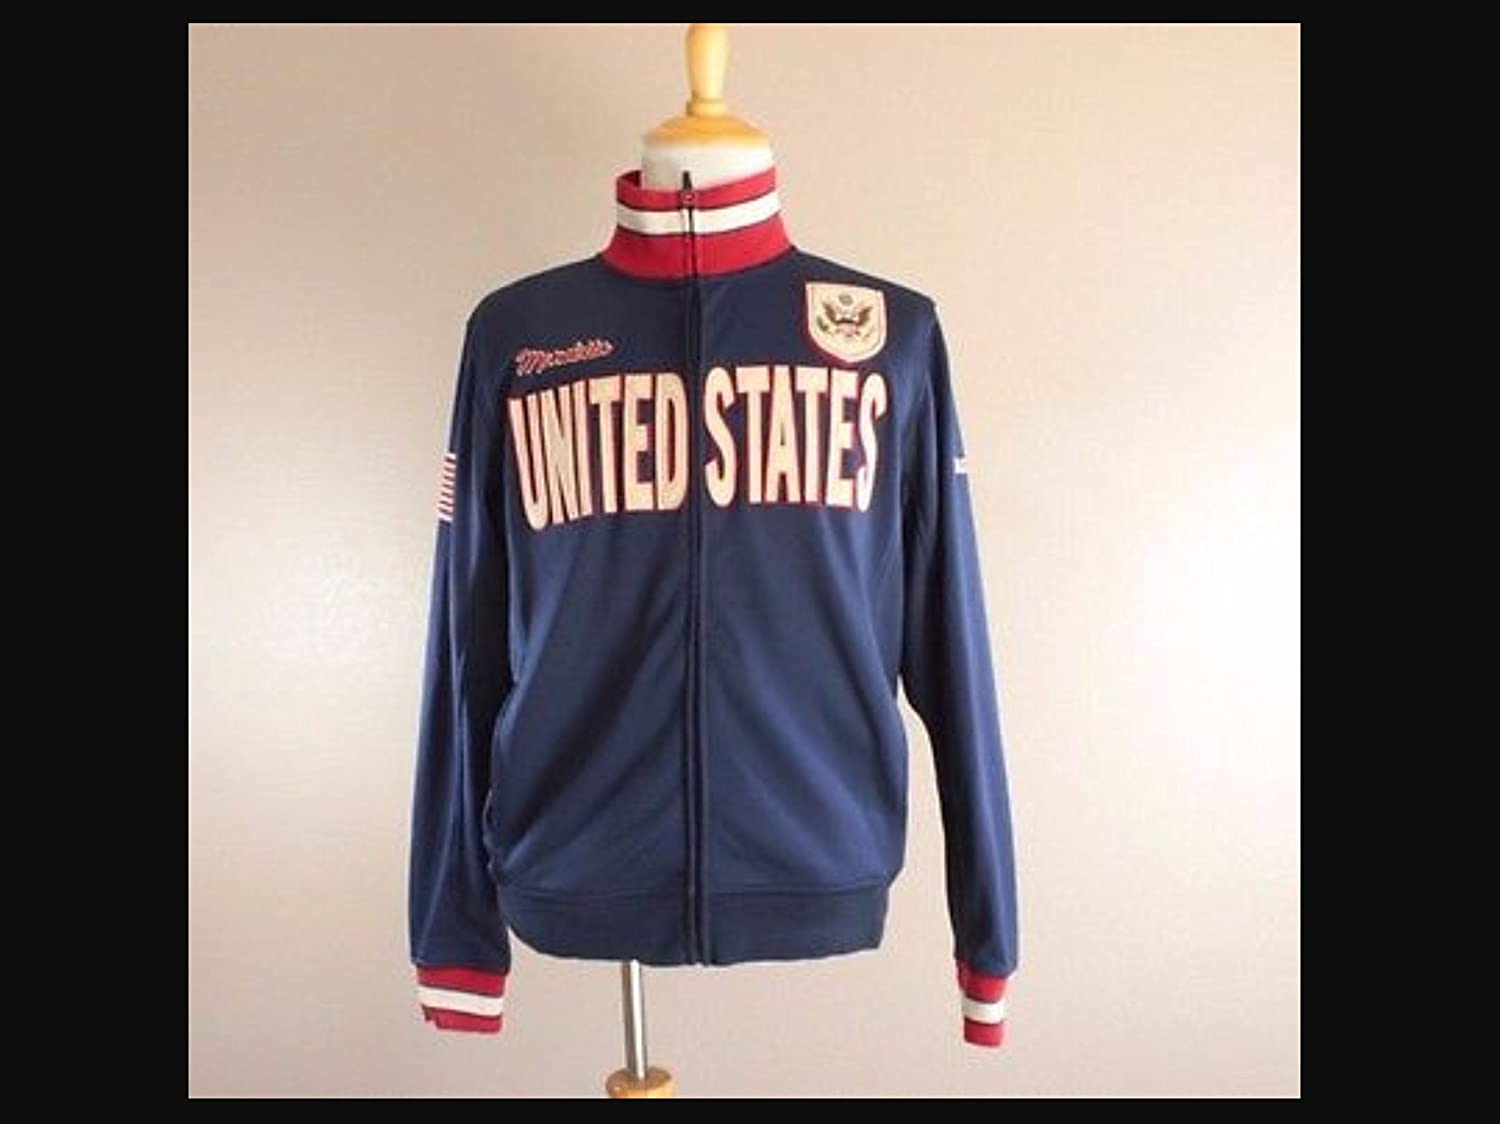 USA United States America Jacket Track Soccer Adult Sizes Soccer Football RhinoX Official Merchandise